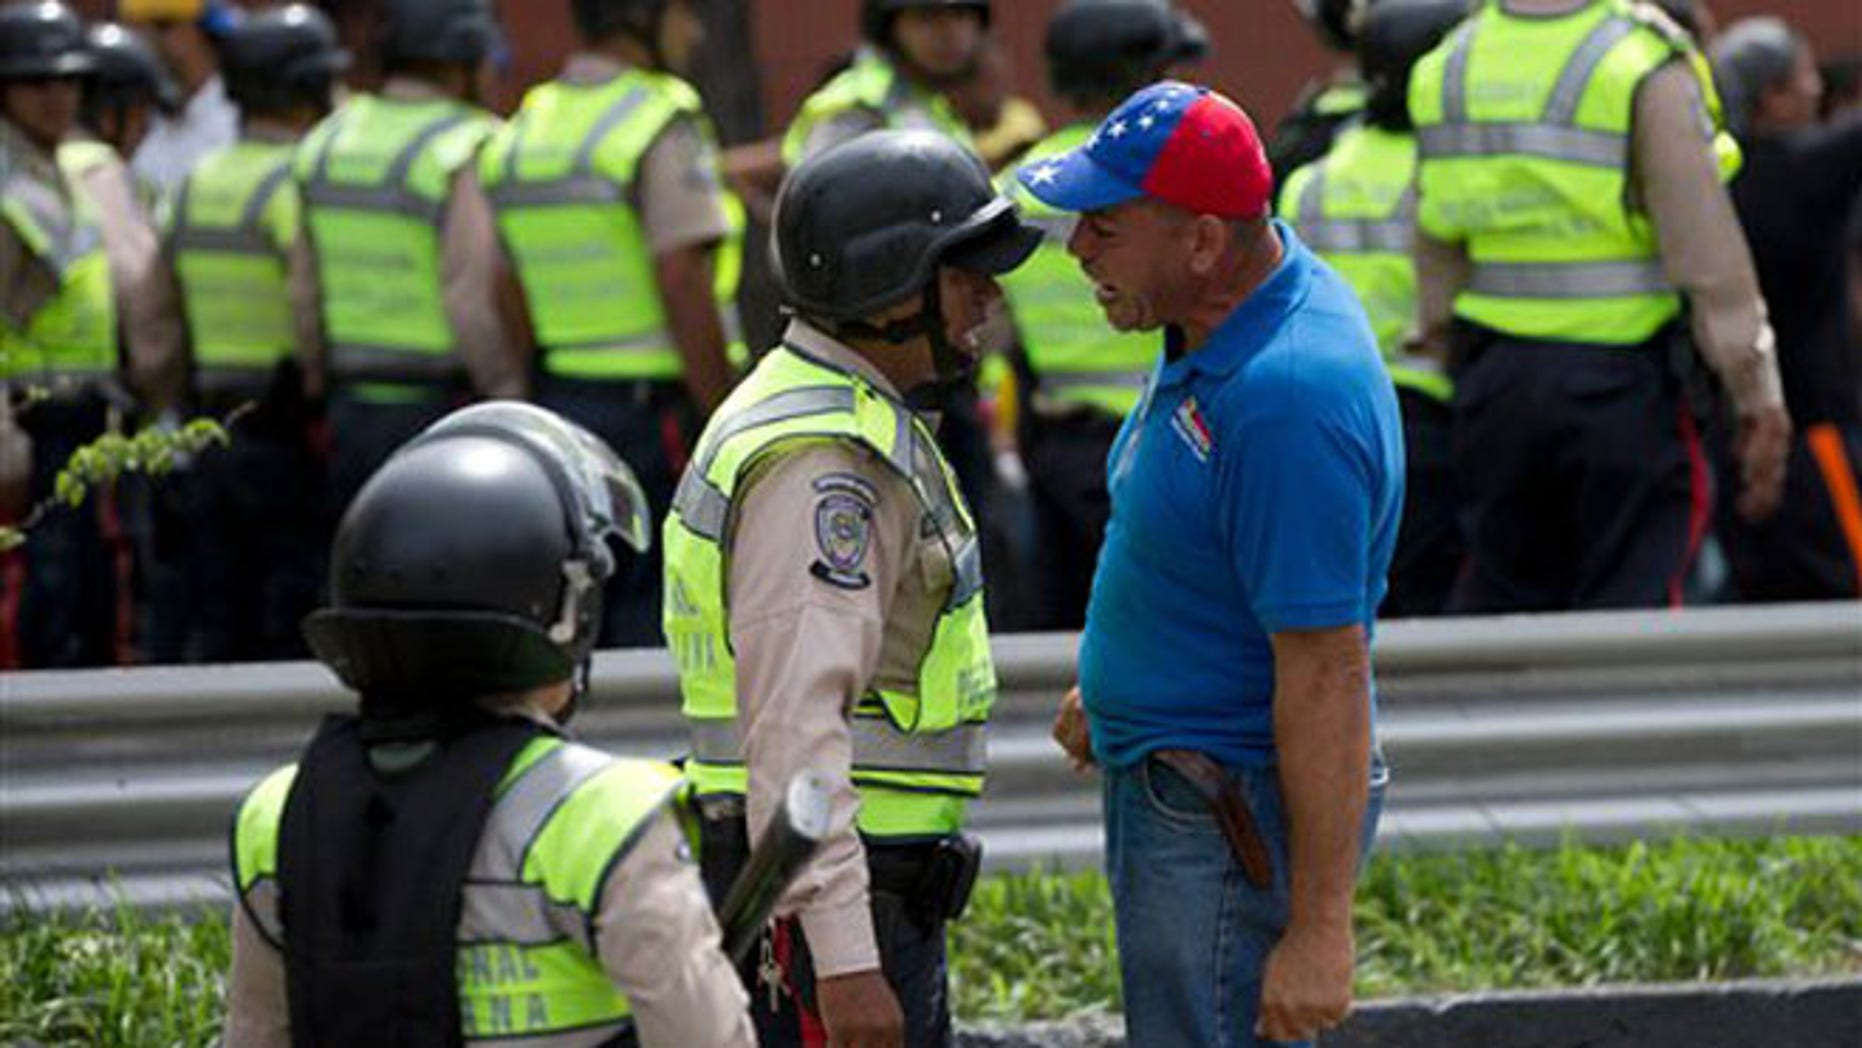 An anti-government demonstrator argues with a Bolivarian National Police officer during a march toward the headquarters of the national electoral body, CNE, in Caracas, Venezuela, Wednesday, May 18, 2016. The opposition was blocked from marching to the CNE as they demand the government allow it to pursue a recall referendum against Venezuela's President Nicolas Maduro. (AP Photo/Fernando Llano)